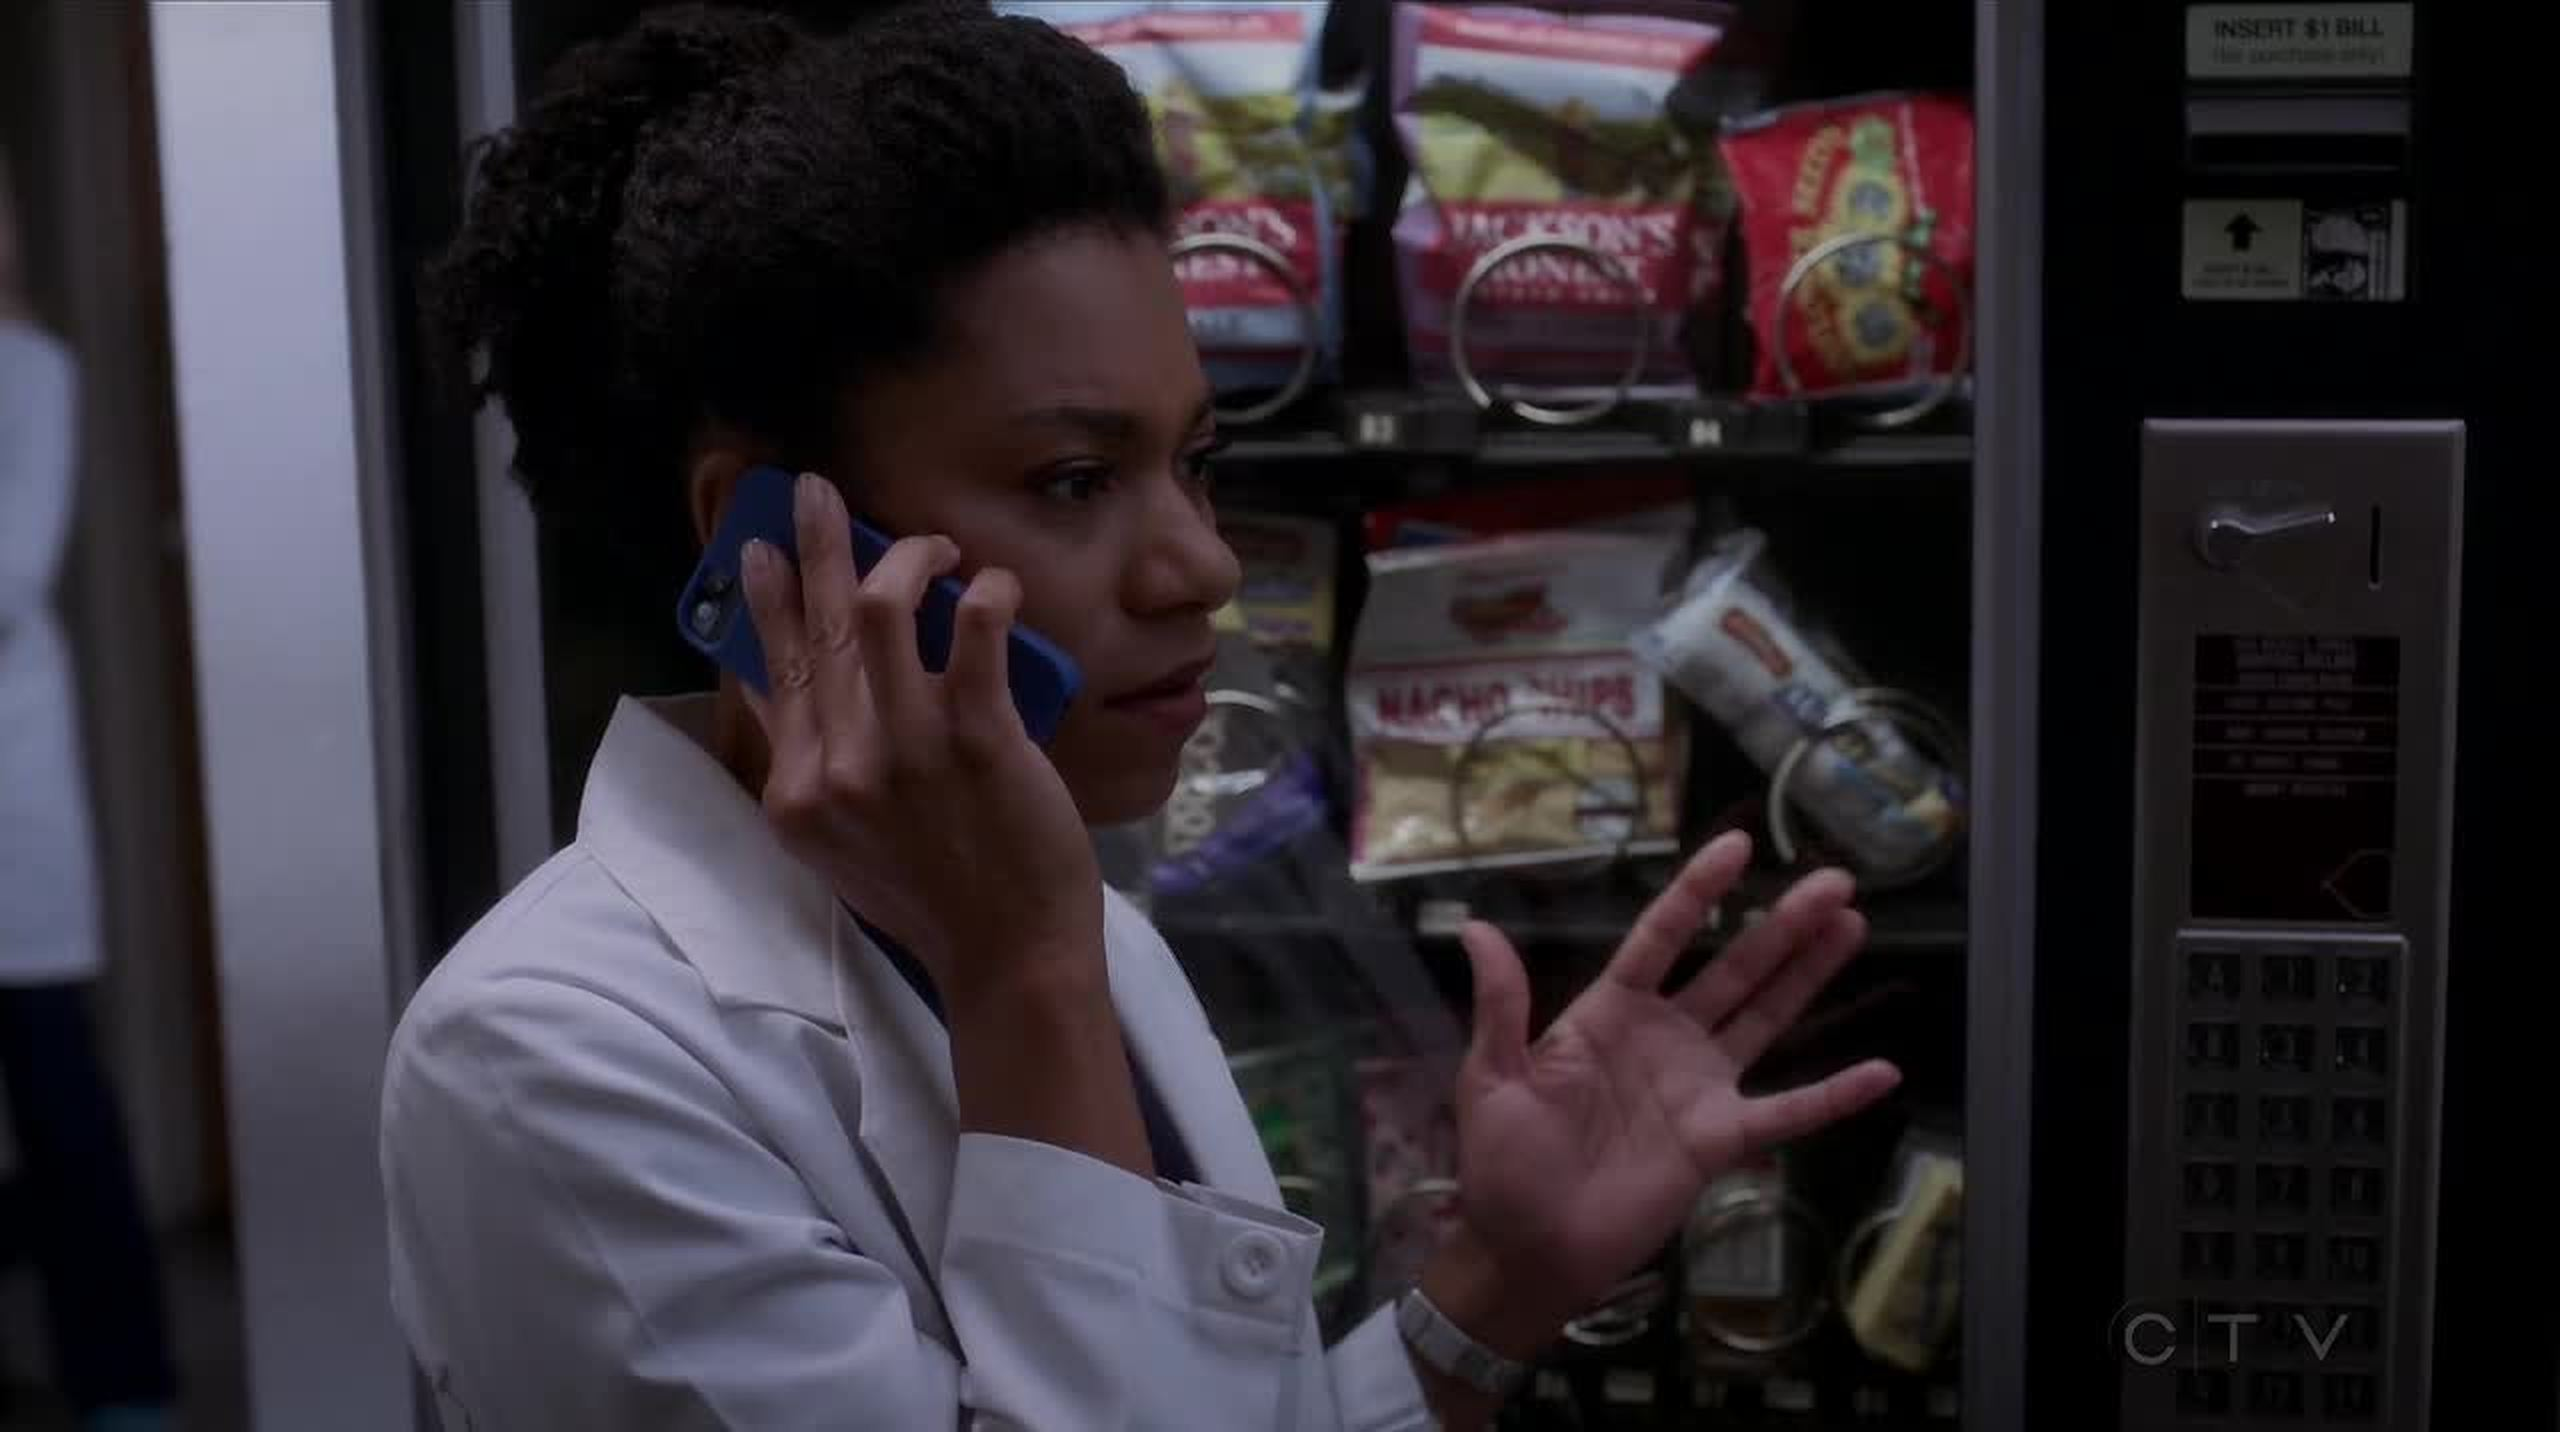 What happened to Maggie during that phone call?